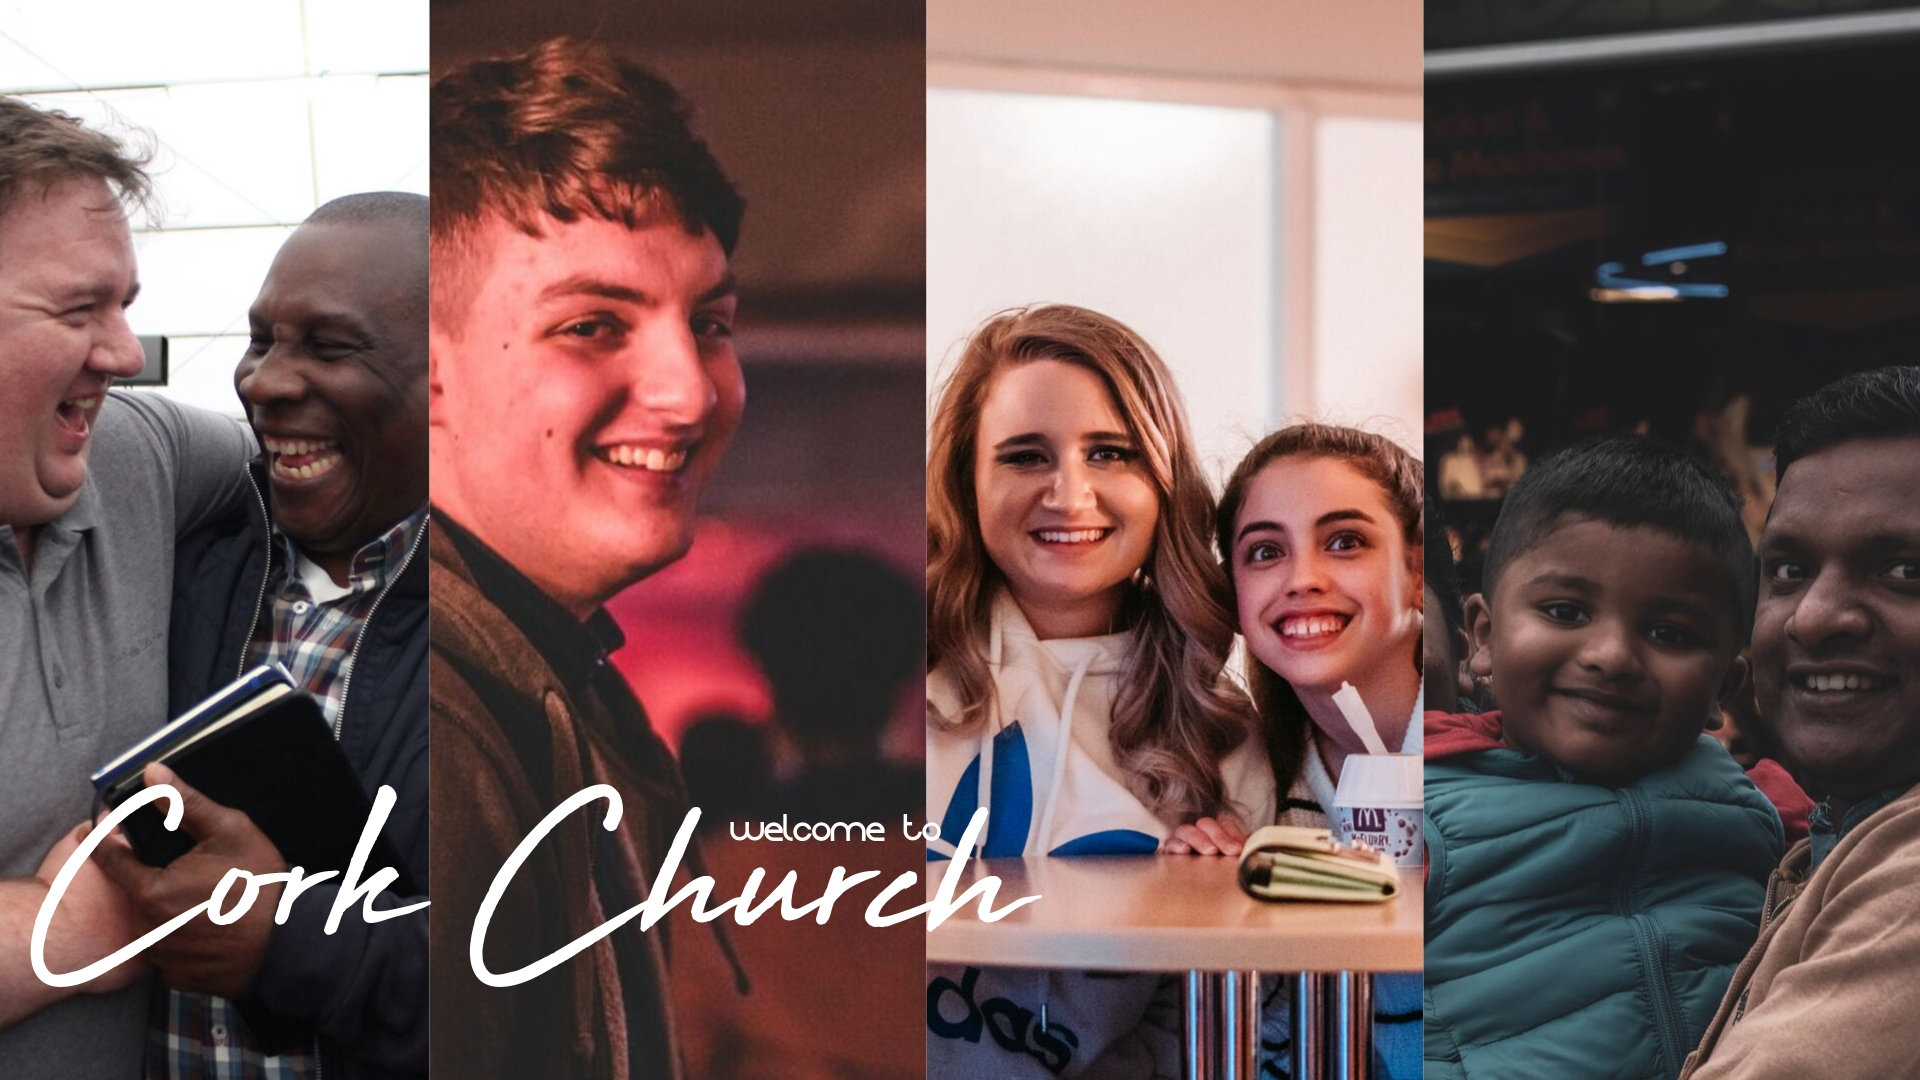 Copy of Cork Church FB Cover.jpg